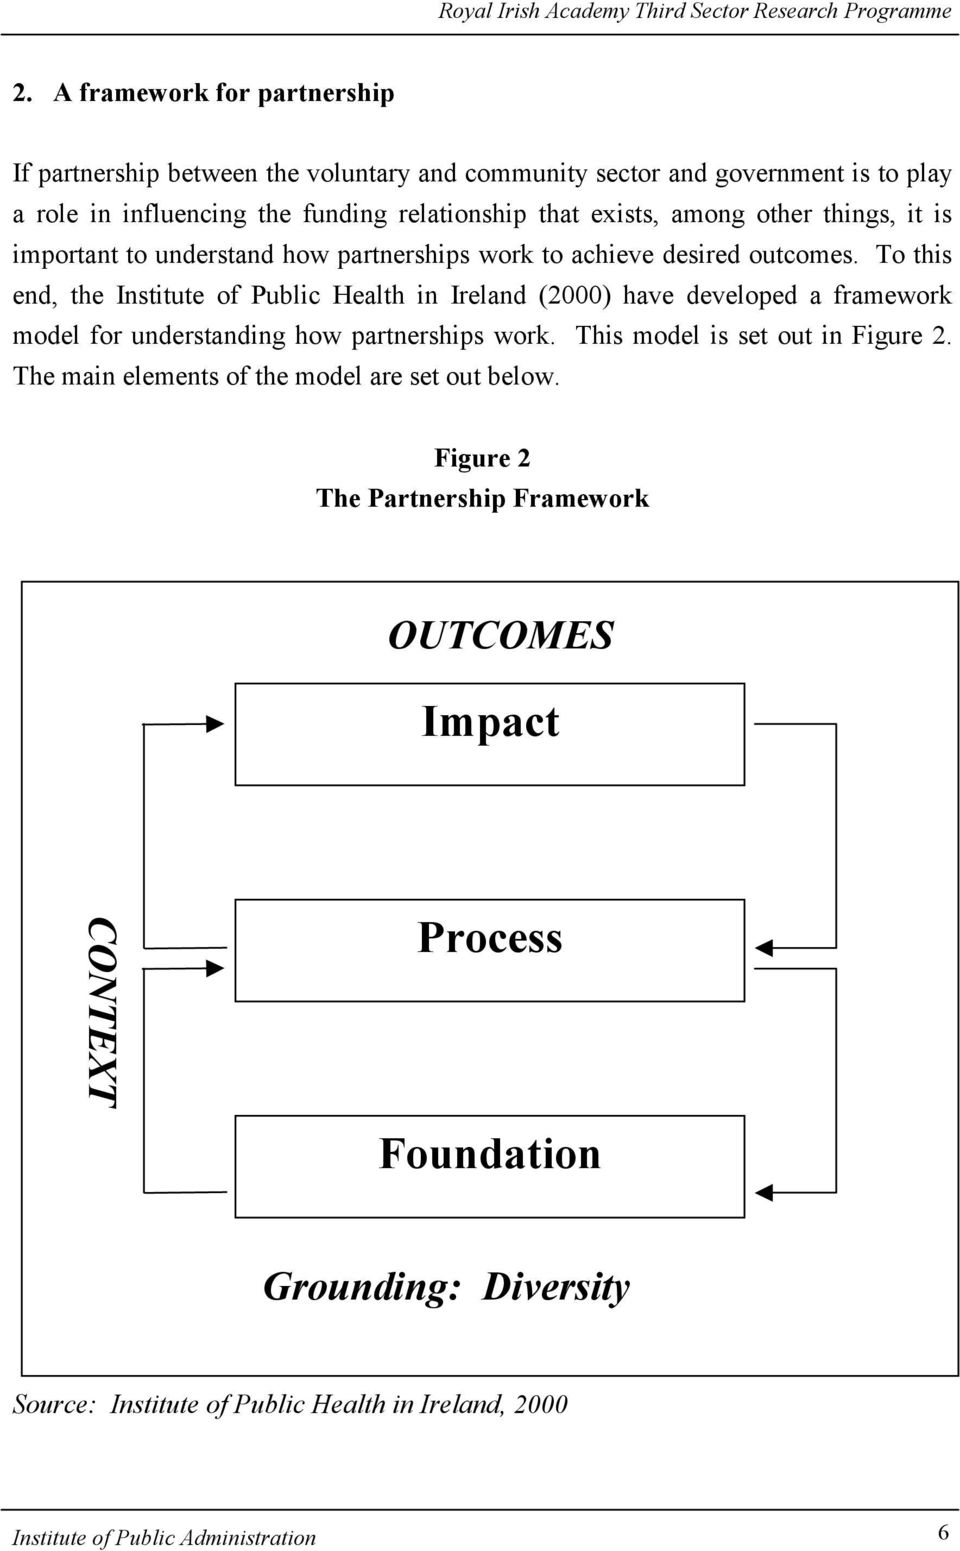 To this end, the Institute of Public Health in Ireland (2000) have developed a framework model for understanding how partnerships work. This model is set out in Figure 2.